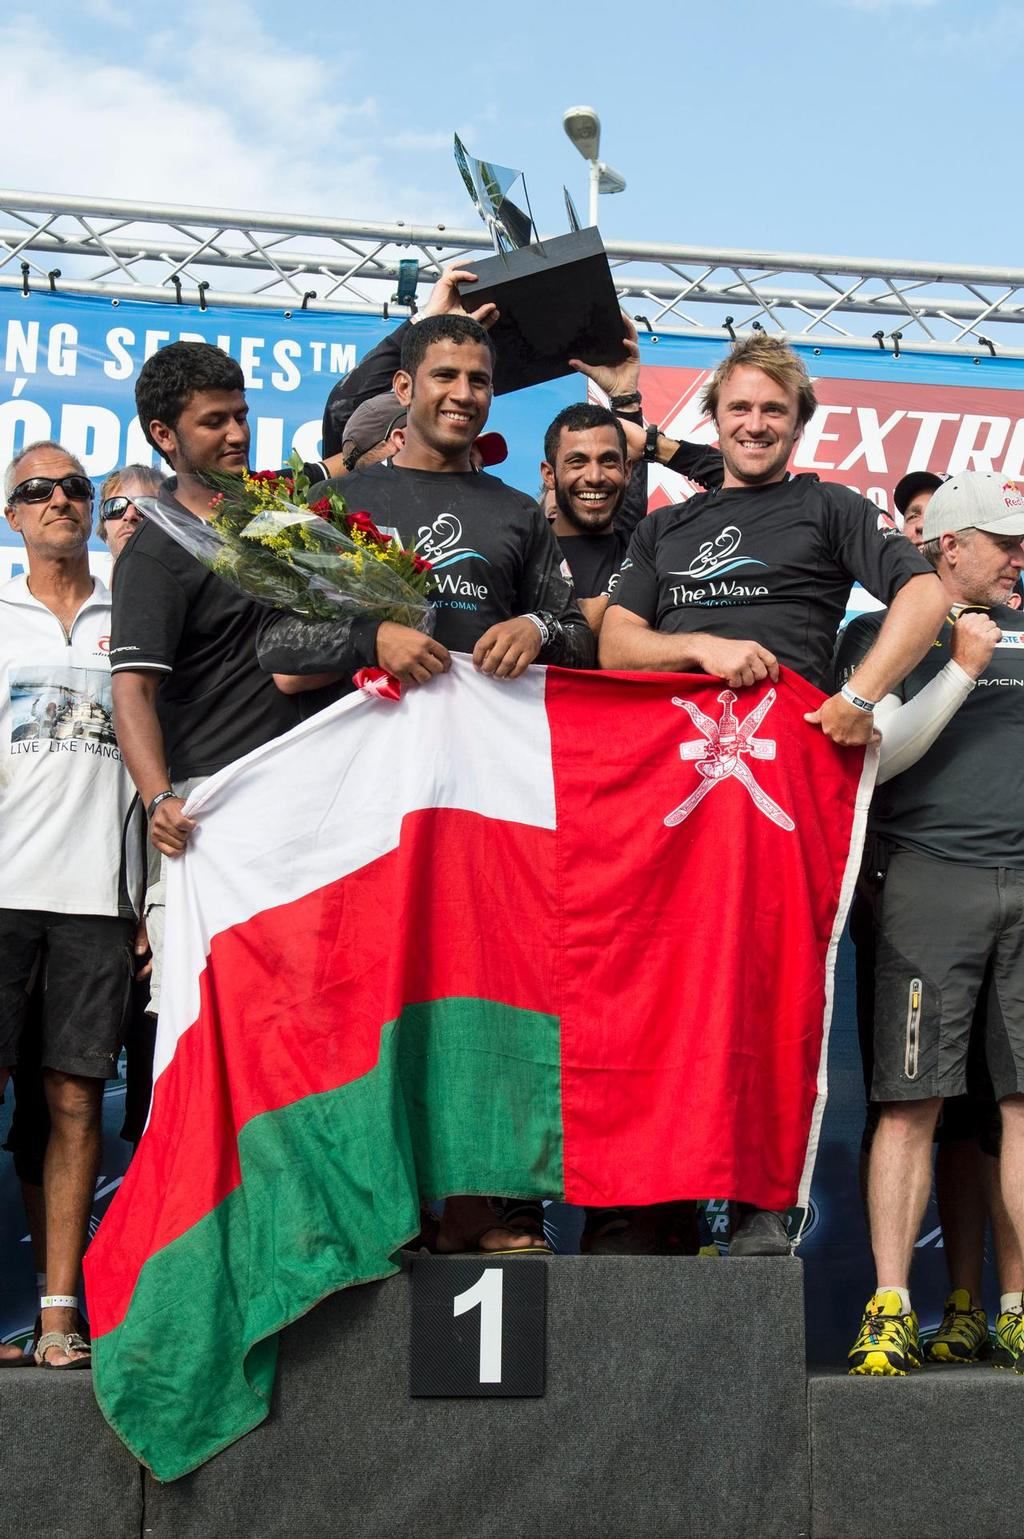 Extreme Sailing Series Act 8 - The Wave Muscat skippered by Leigh McMillan (GBR), mainsail trimmer Pete Greenhalgh (GBR), headsail trimmer Musab Al Hadi (OMA), tactician Ed Smyth (NZL) and bowman Hashim Al Rashdi (OMA)<br /> Winner &copy;  Vincent Curutchet / Lloyd images / OC http://www.lloydimages.com/